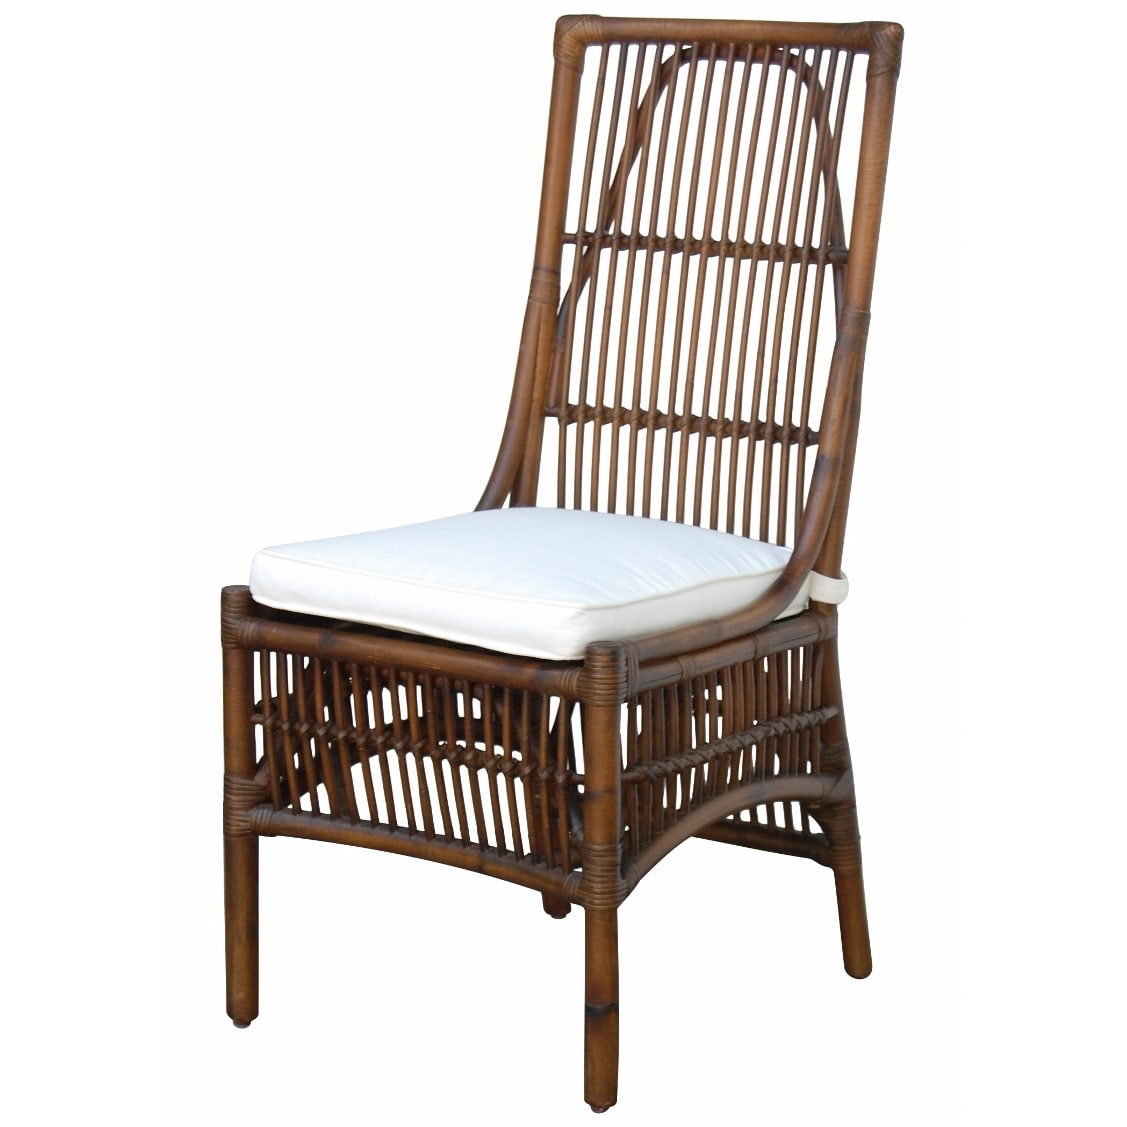 Panana Jack Bora Bora Side Chair with Cushion